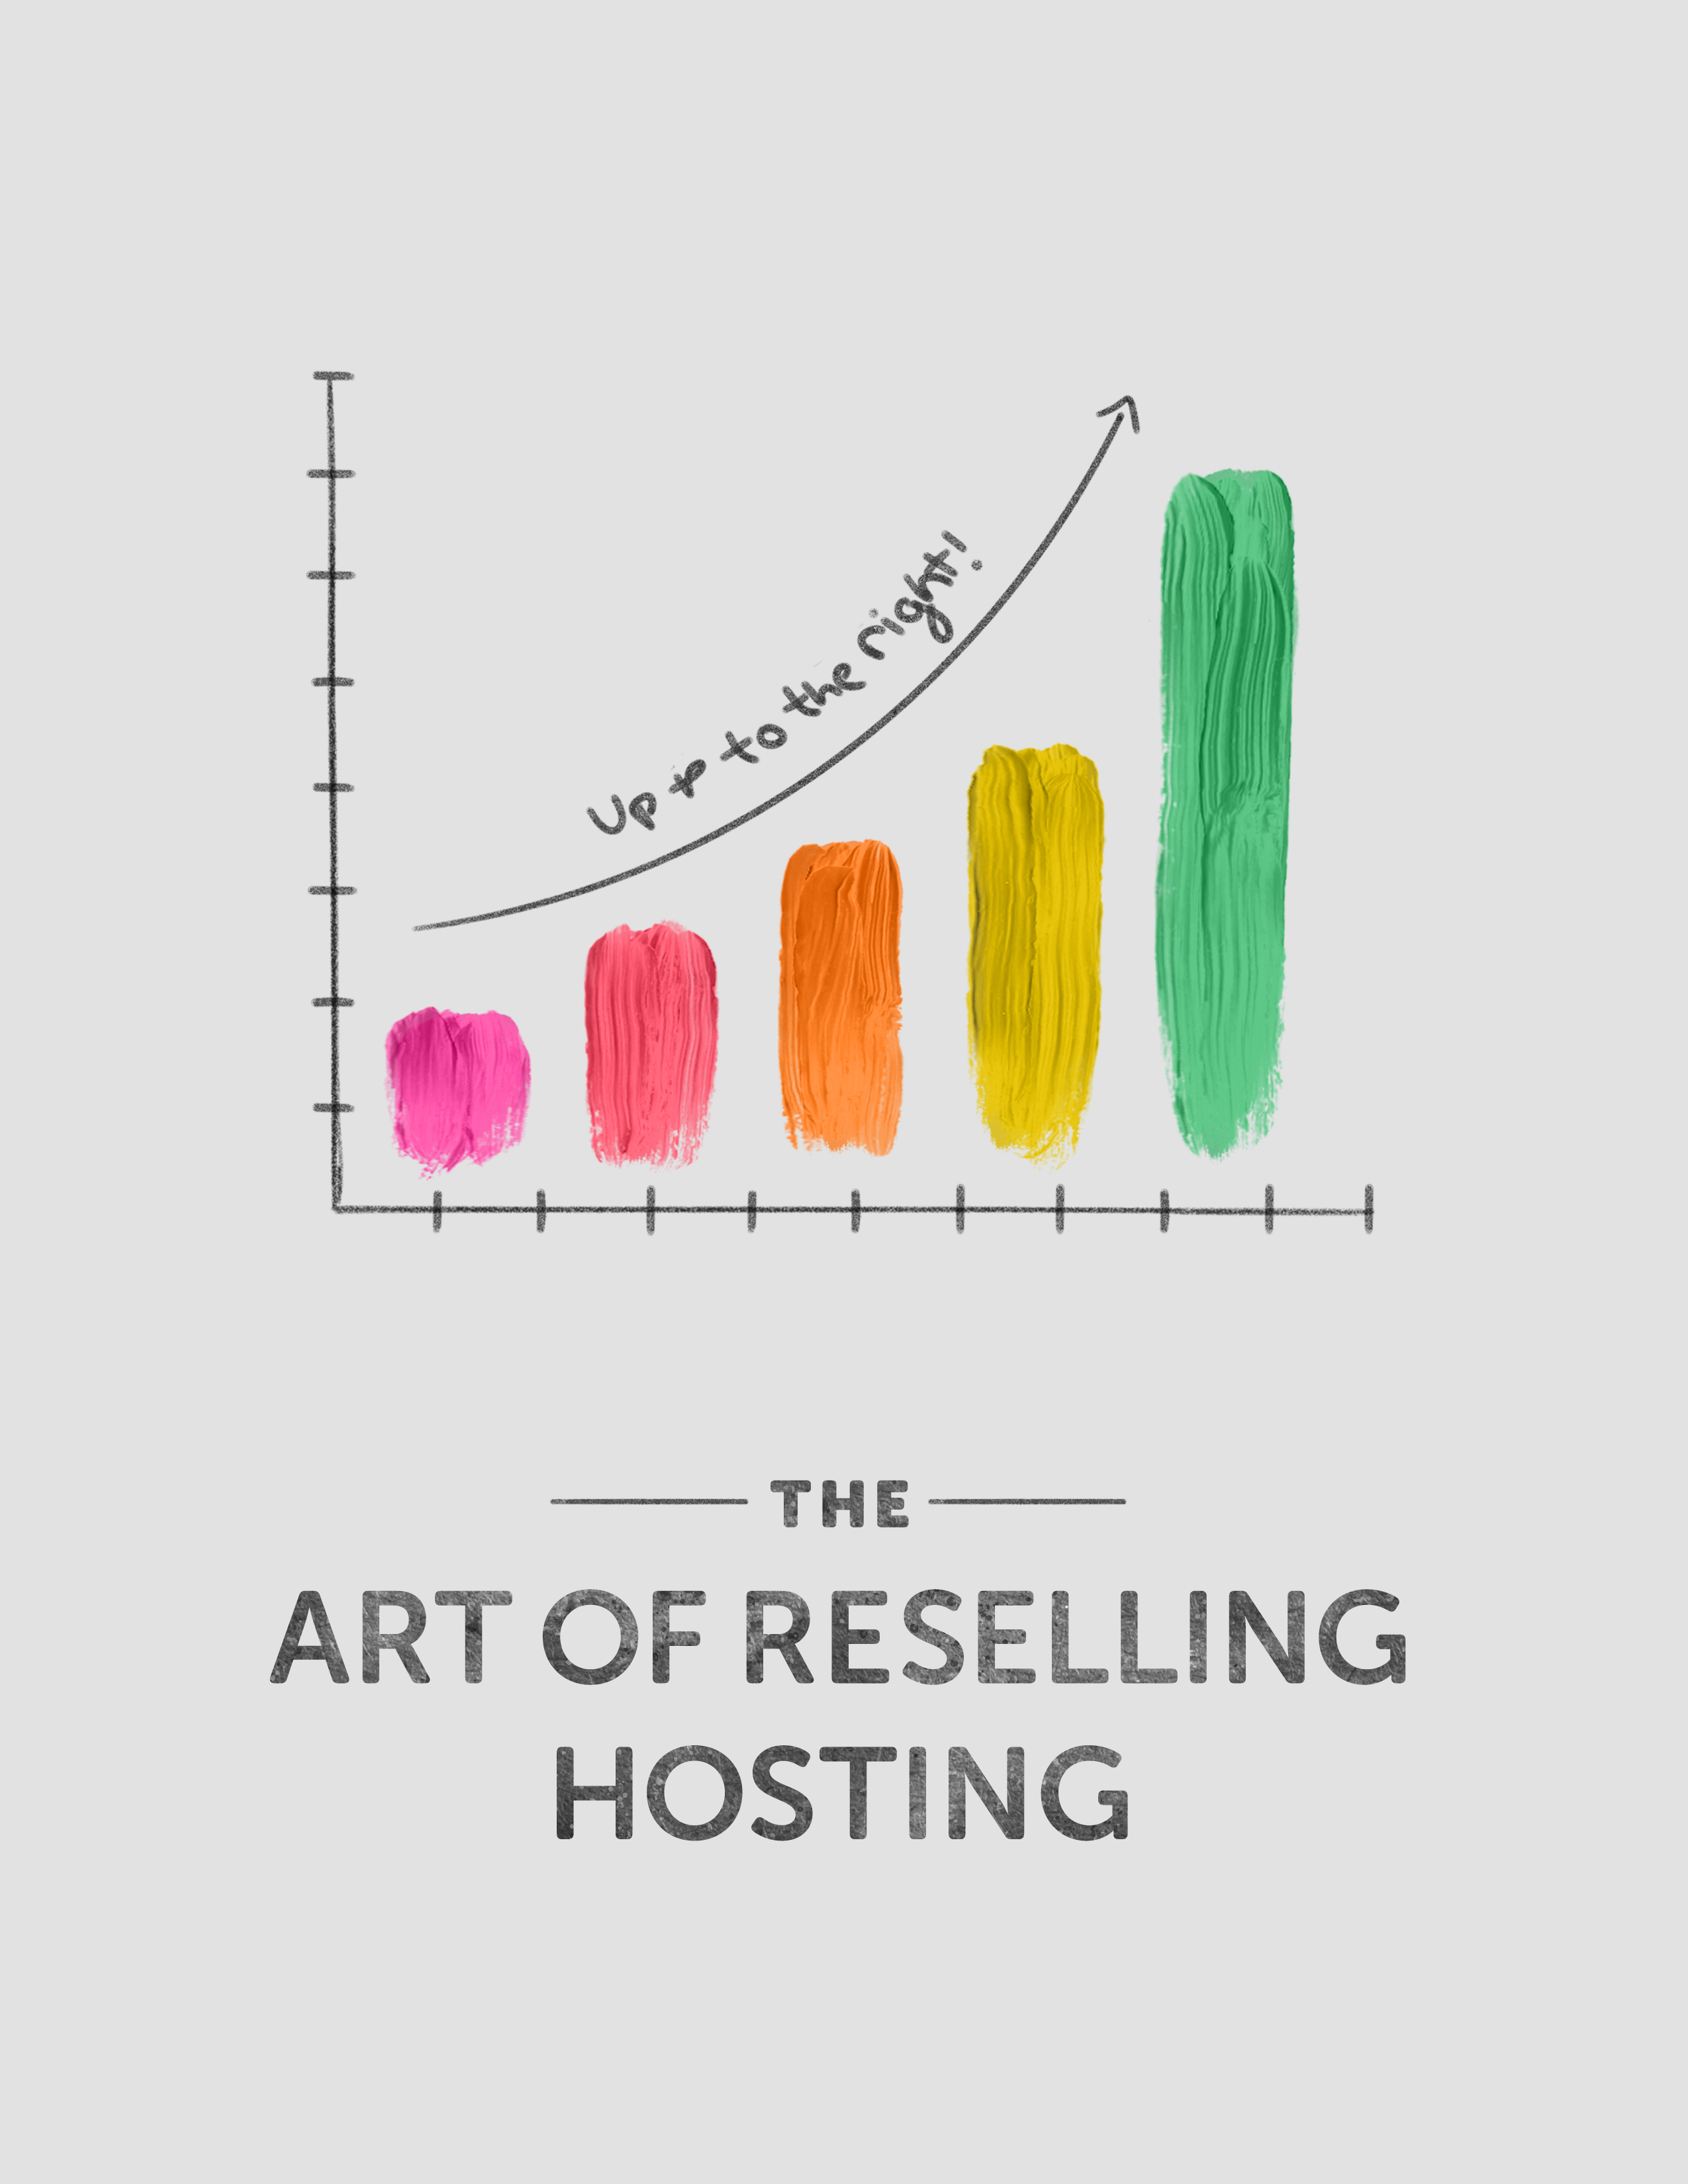 art-of-reselling-hosting-cover.png